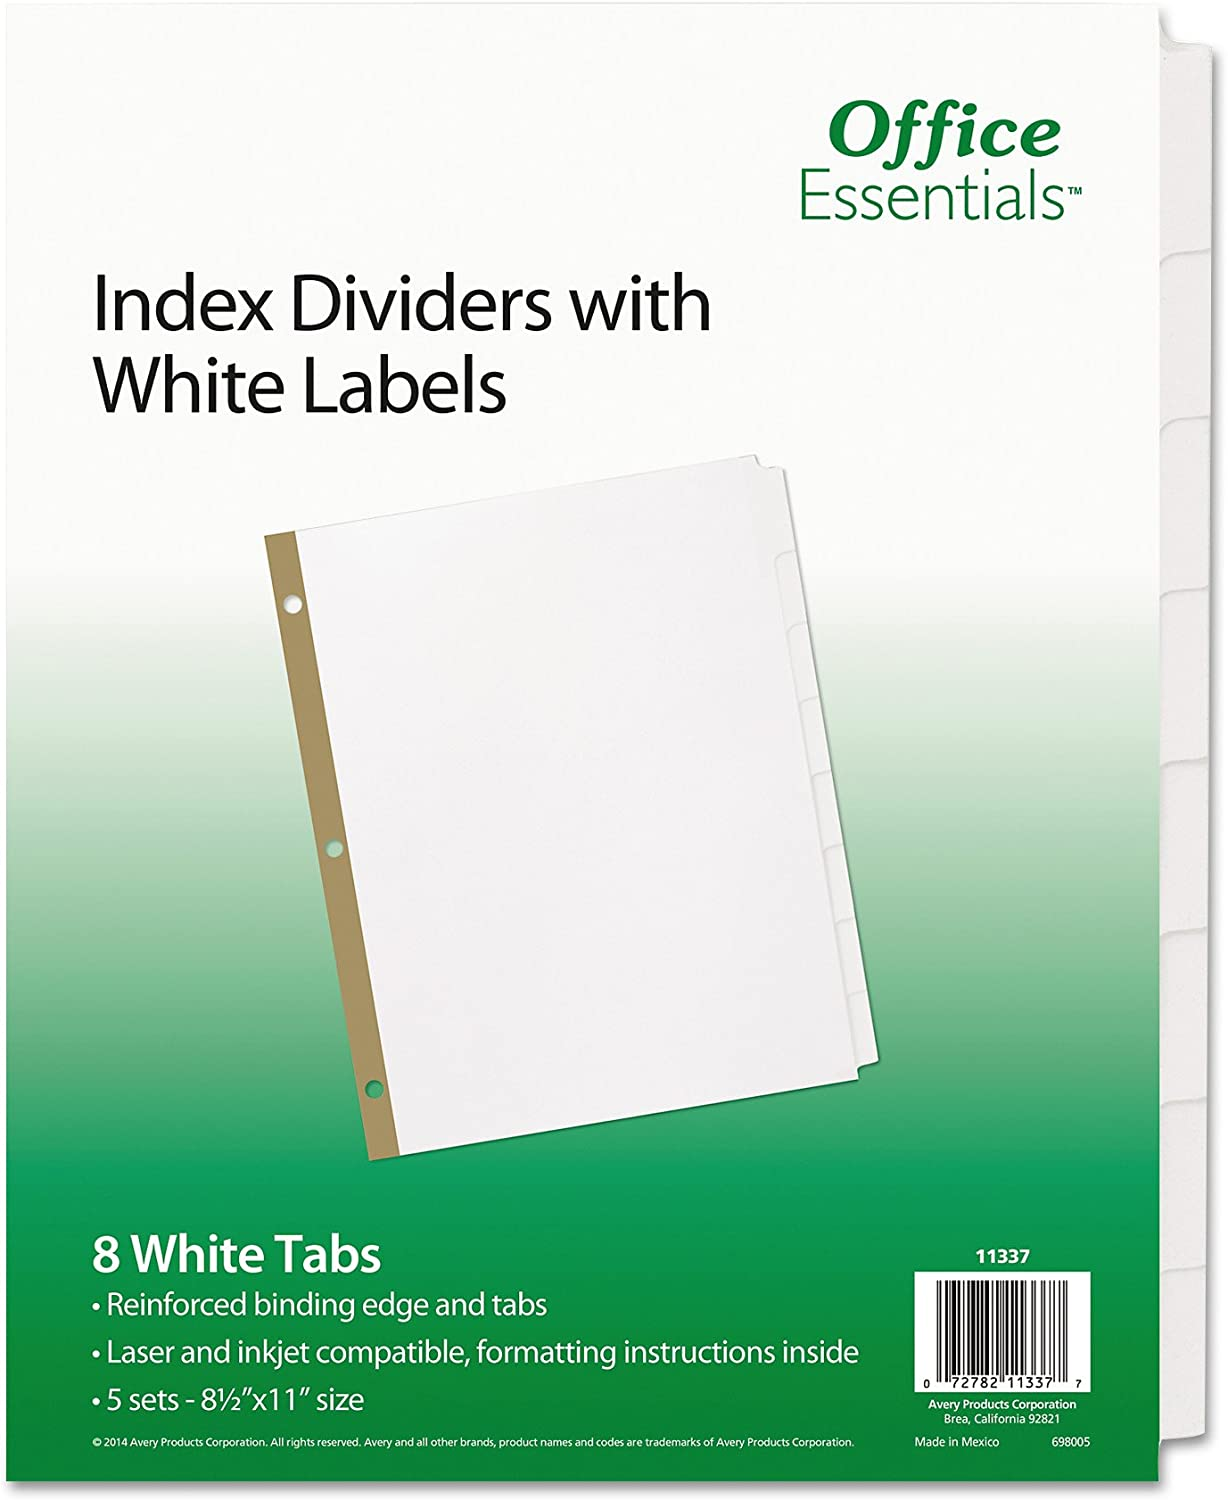 Office Essentials 11337 Index Dividers w/White Labels, 8-Tab, Letter (Pack of 5 Sets)